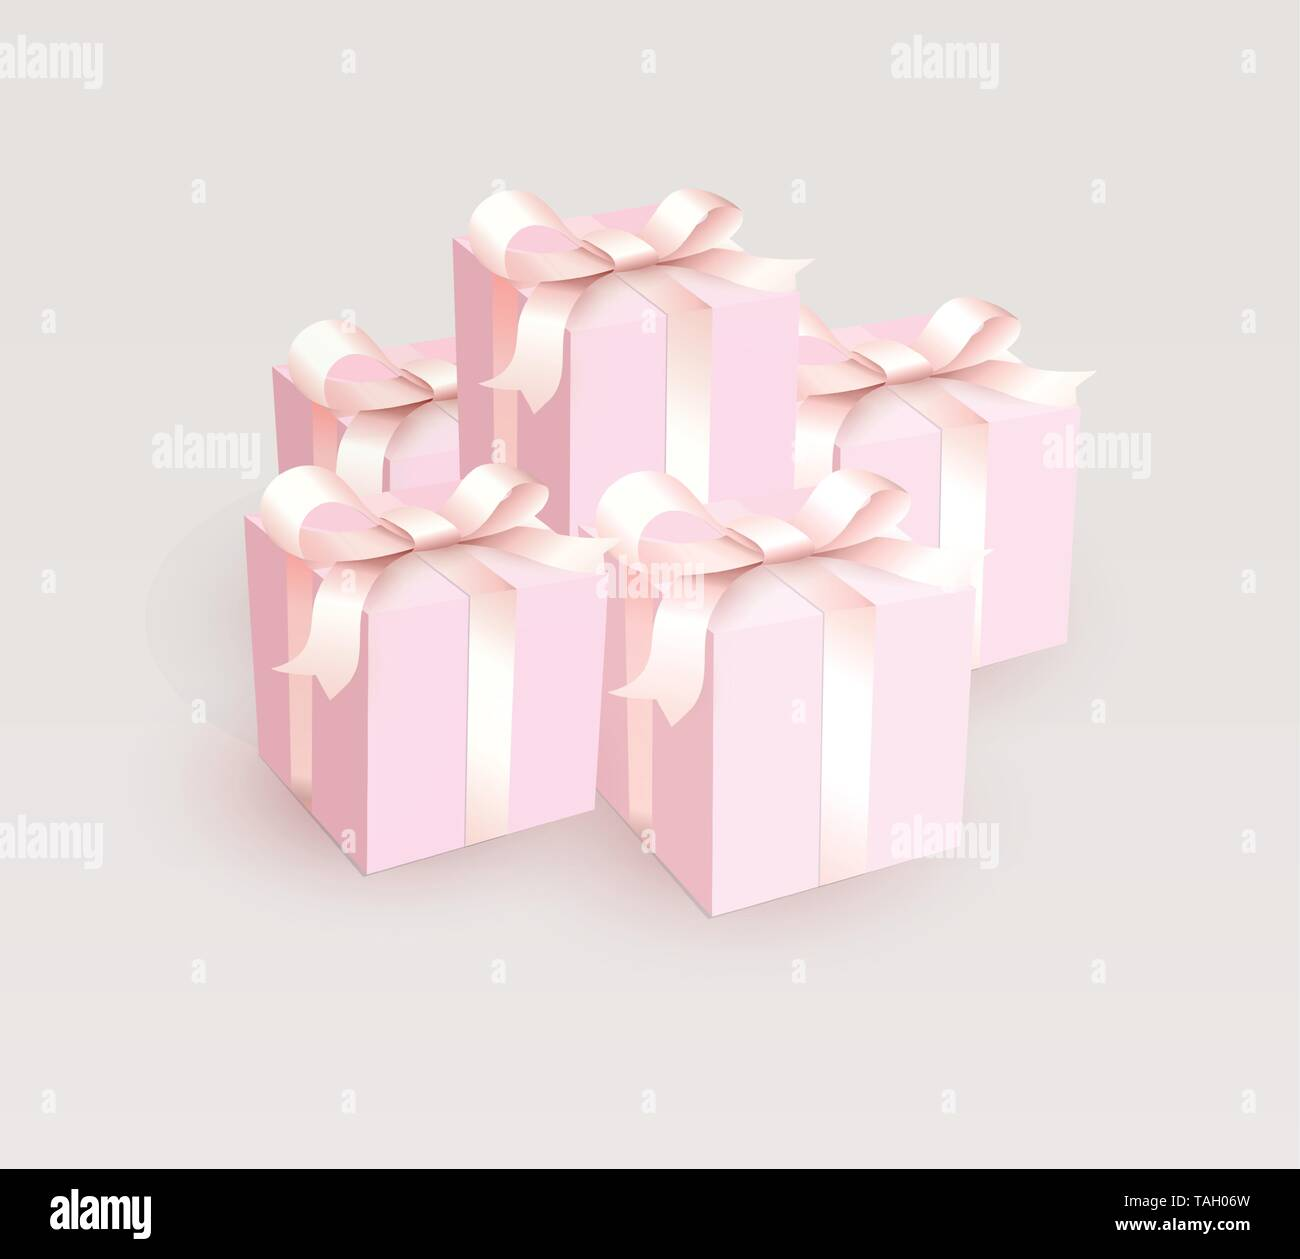 Wedding gift boxes with tender satin ribbon. Magic pink beautiful Gift closed boxes for girl, side view. Vector illustration. - Stock Image